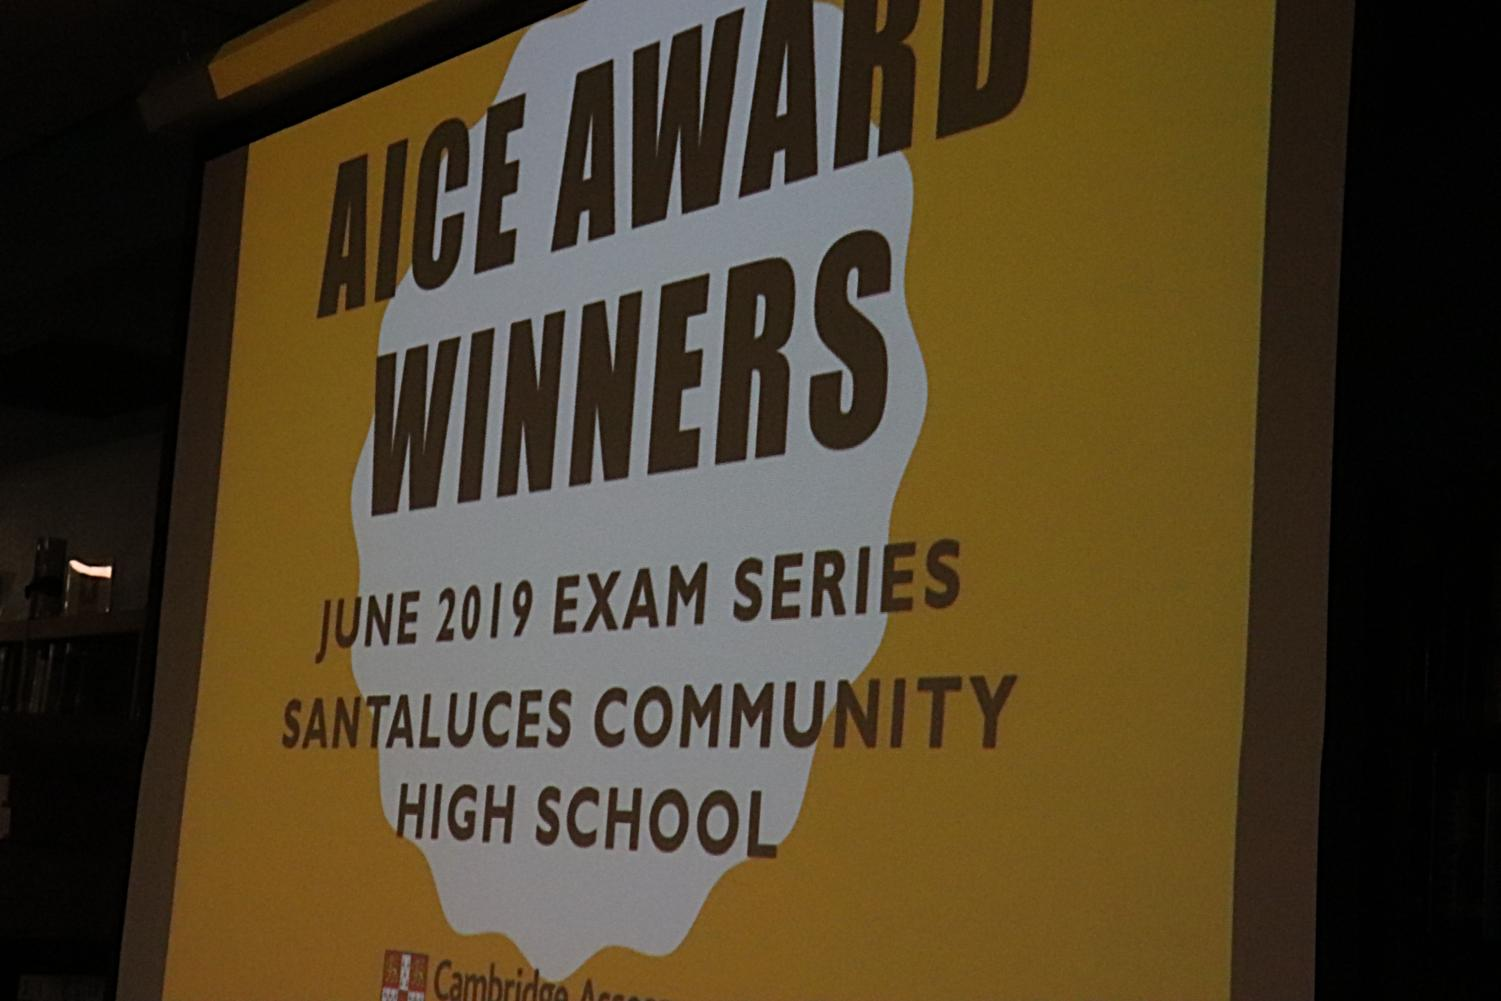 The AICE Award winners were announced at the ceremony.